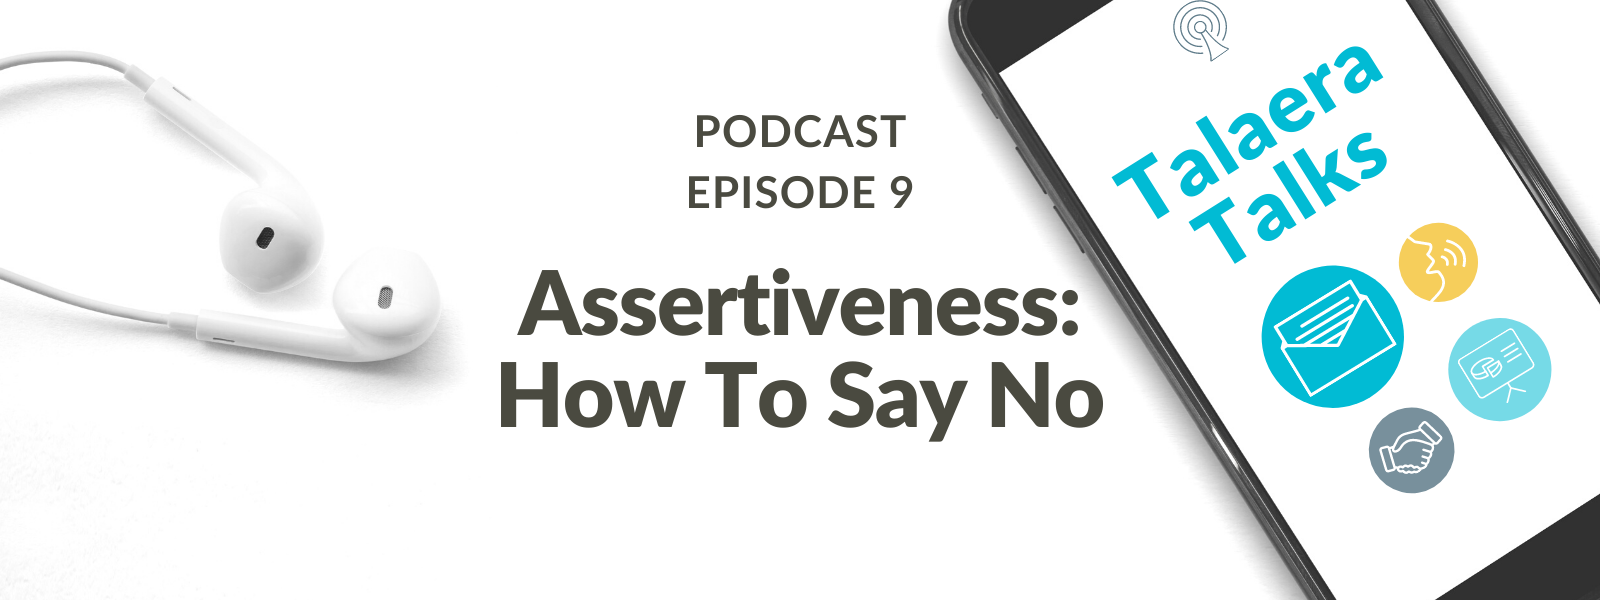 How To Say No: The Truth About Assertive Communication [Podcast]